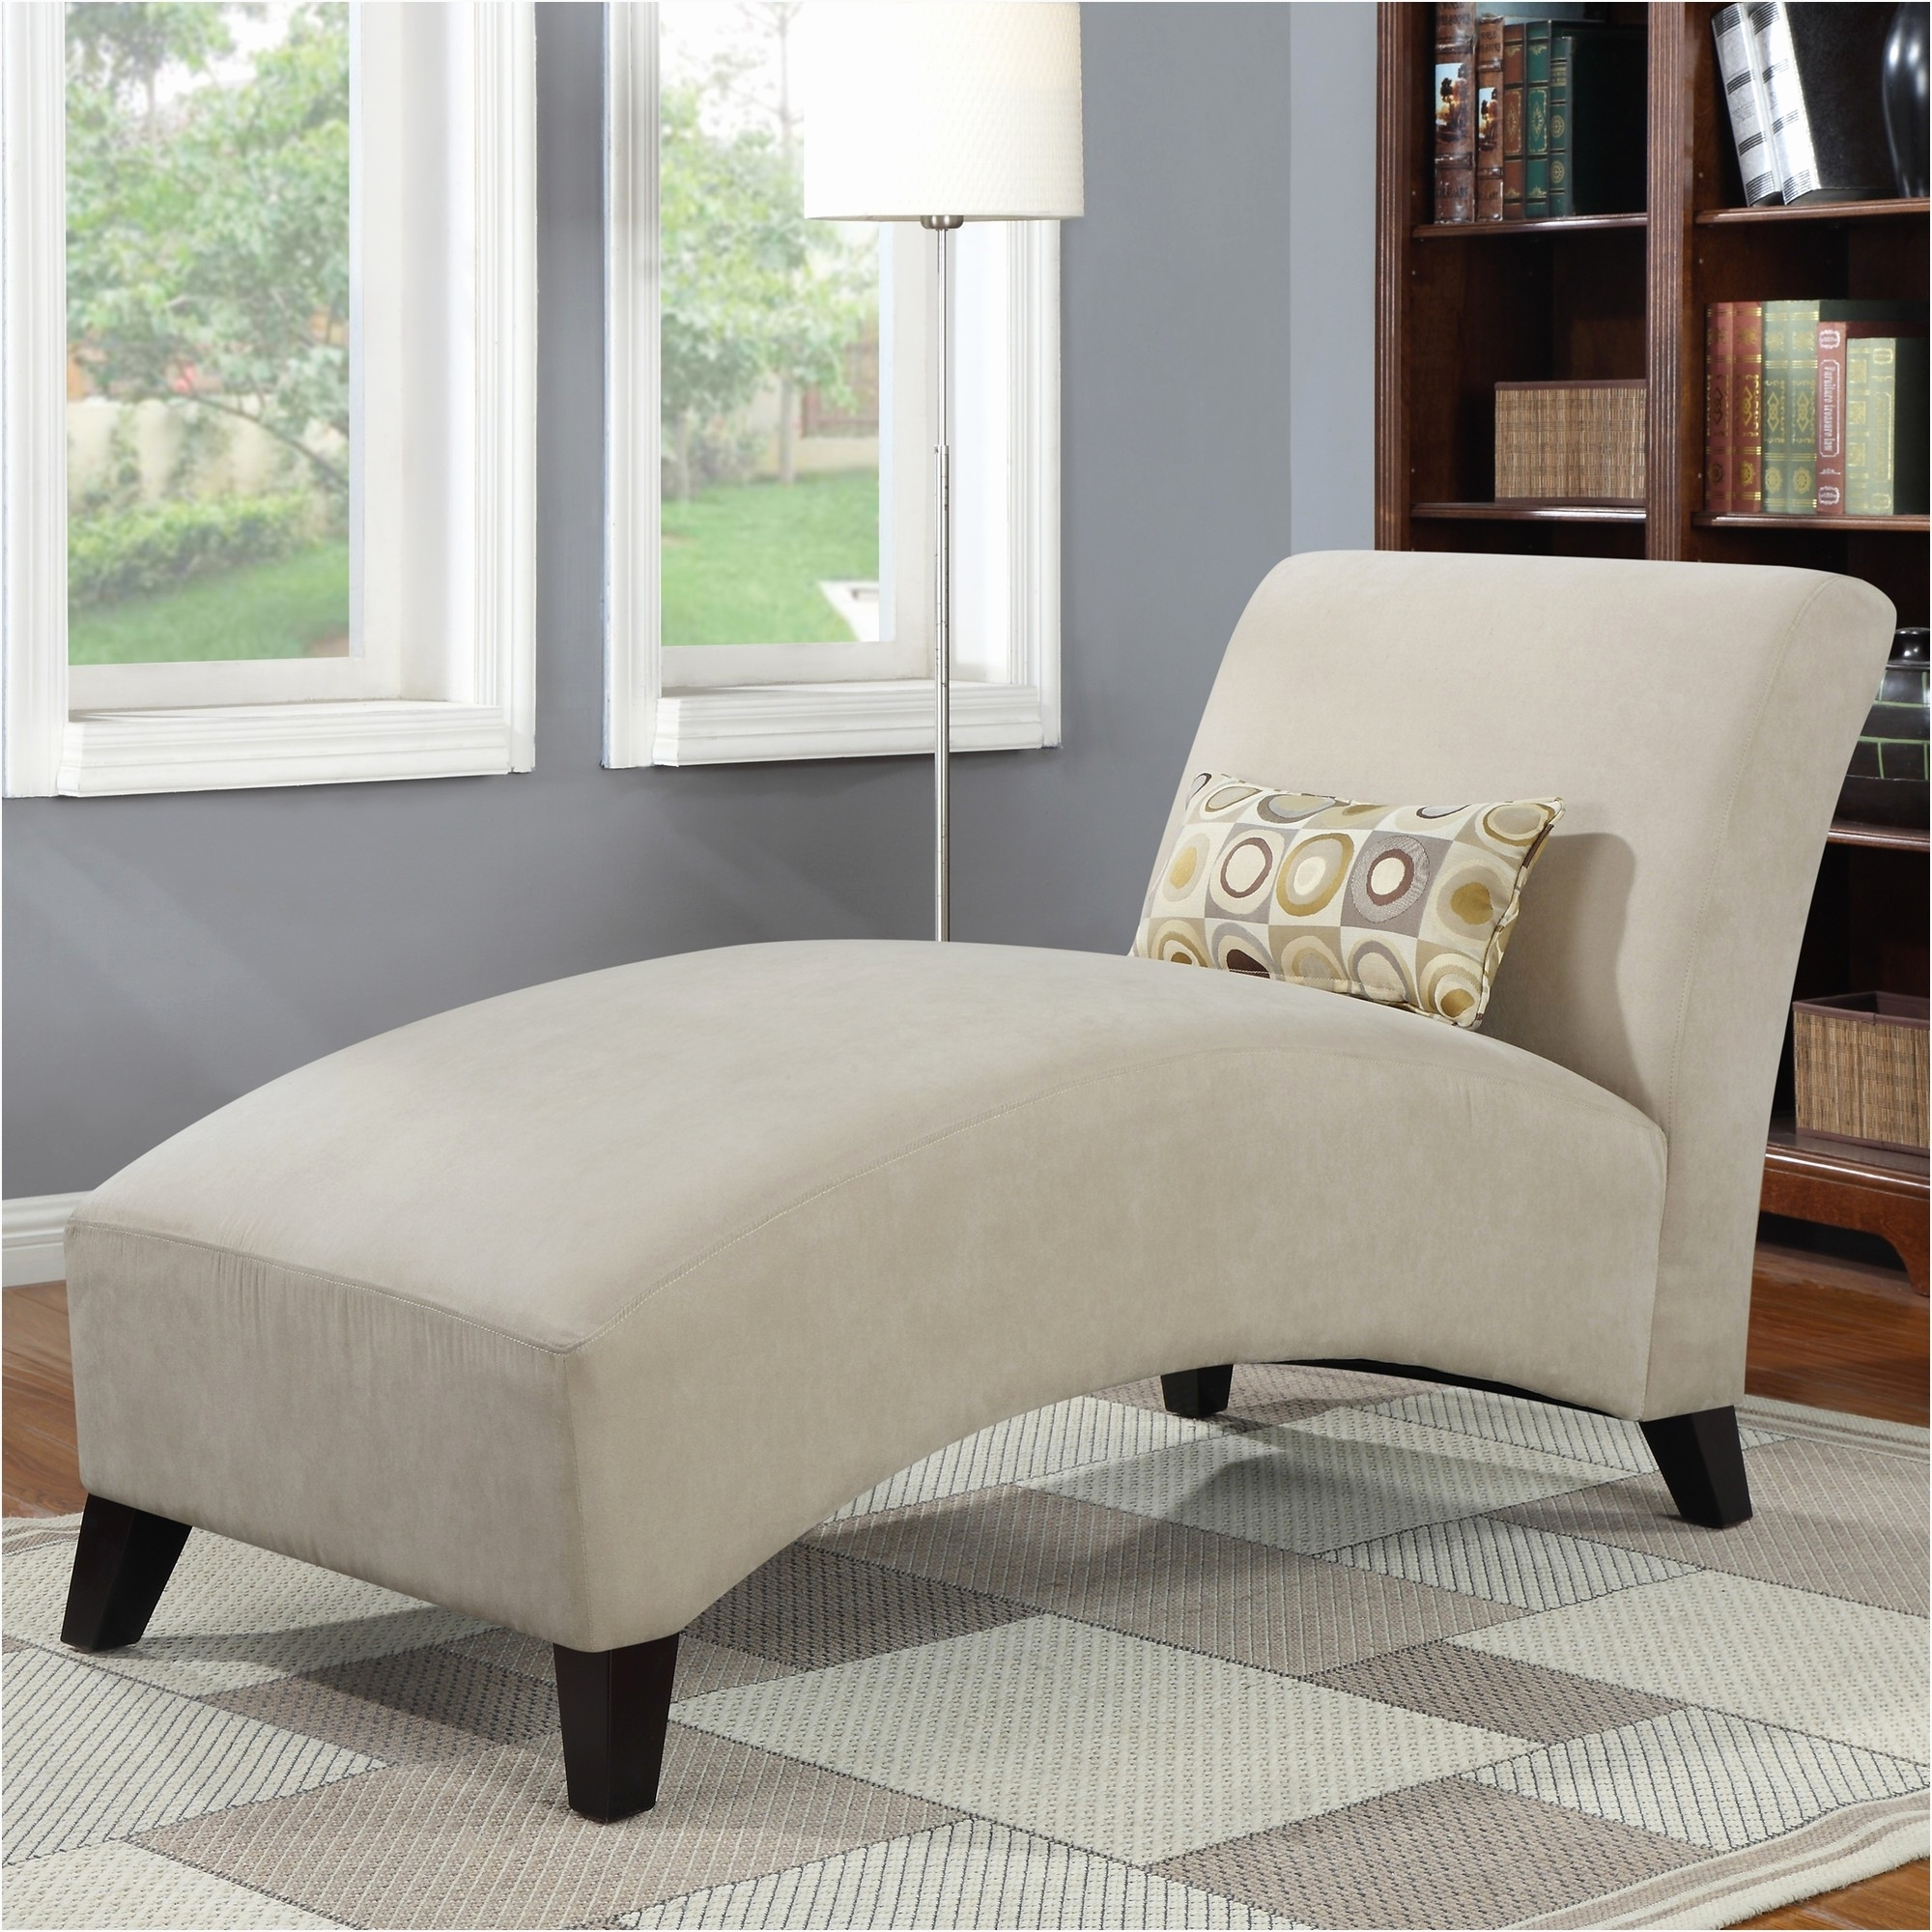 Fresh Chaise Lounge Sofa 2018 – Couches And Sofas Ideas Pertaining To Latest Mini Chaise Lounge Chairs (View 15 of 15)